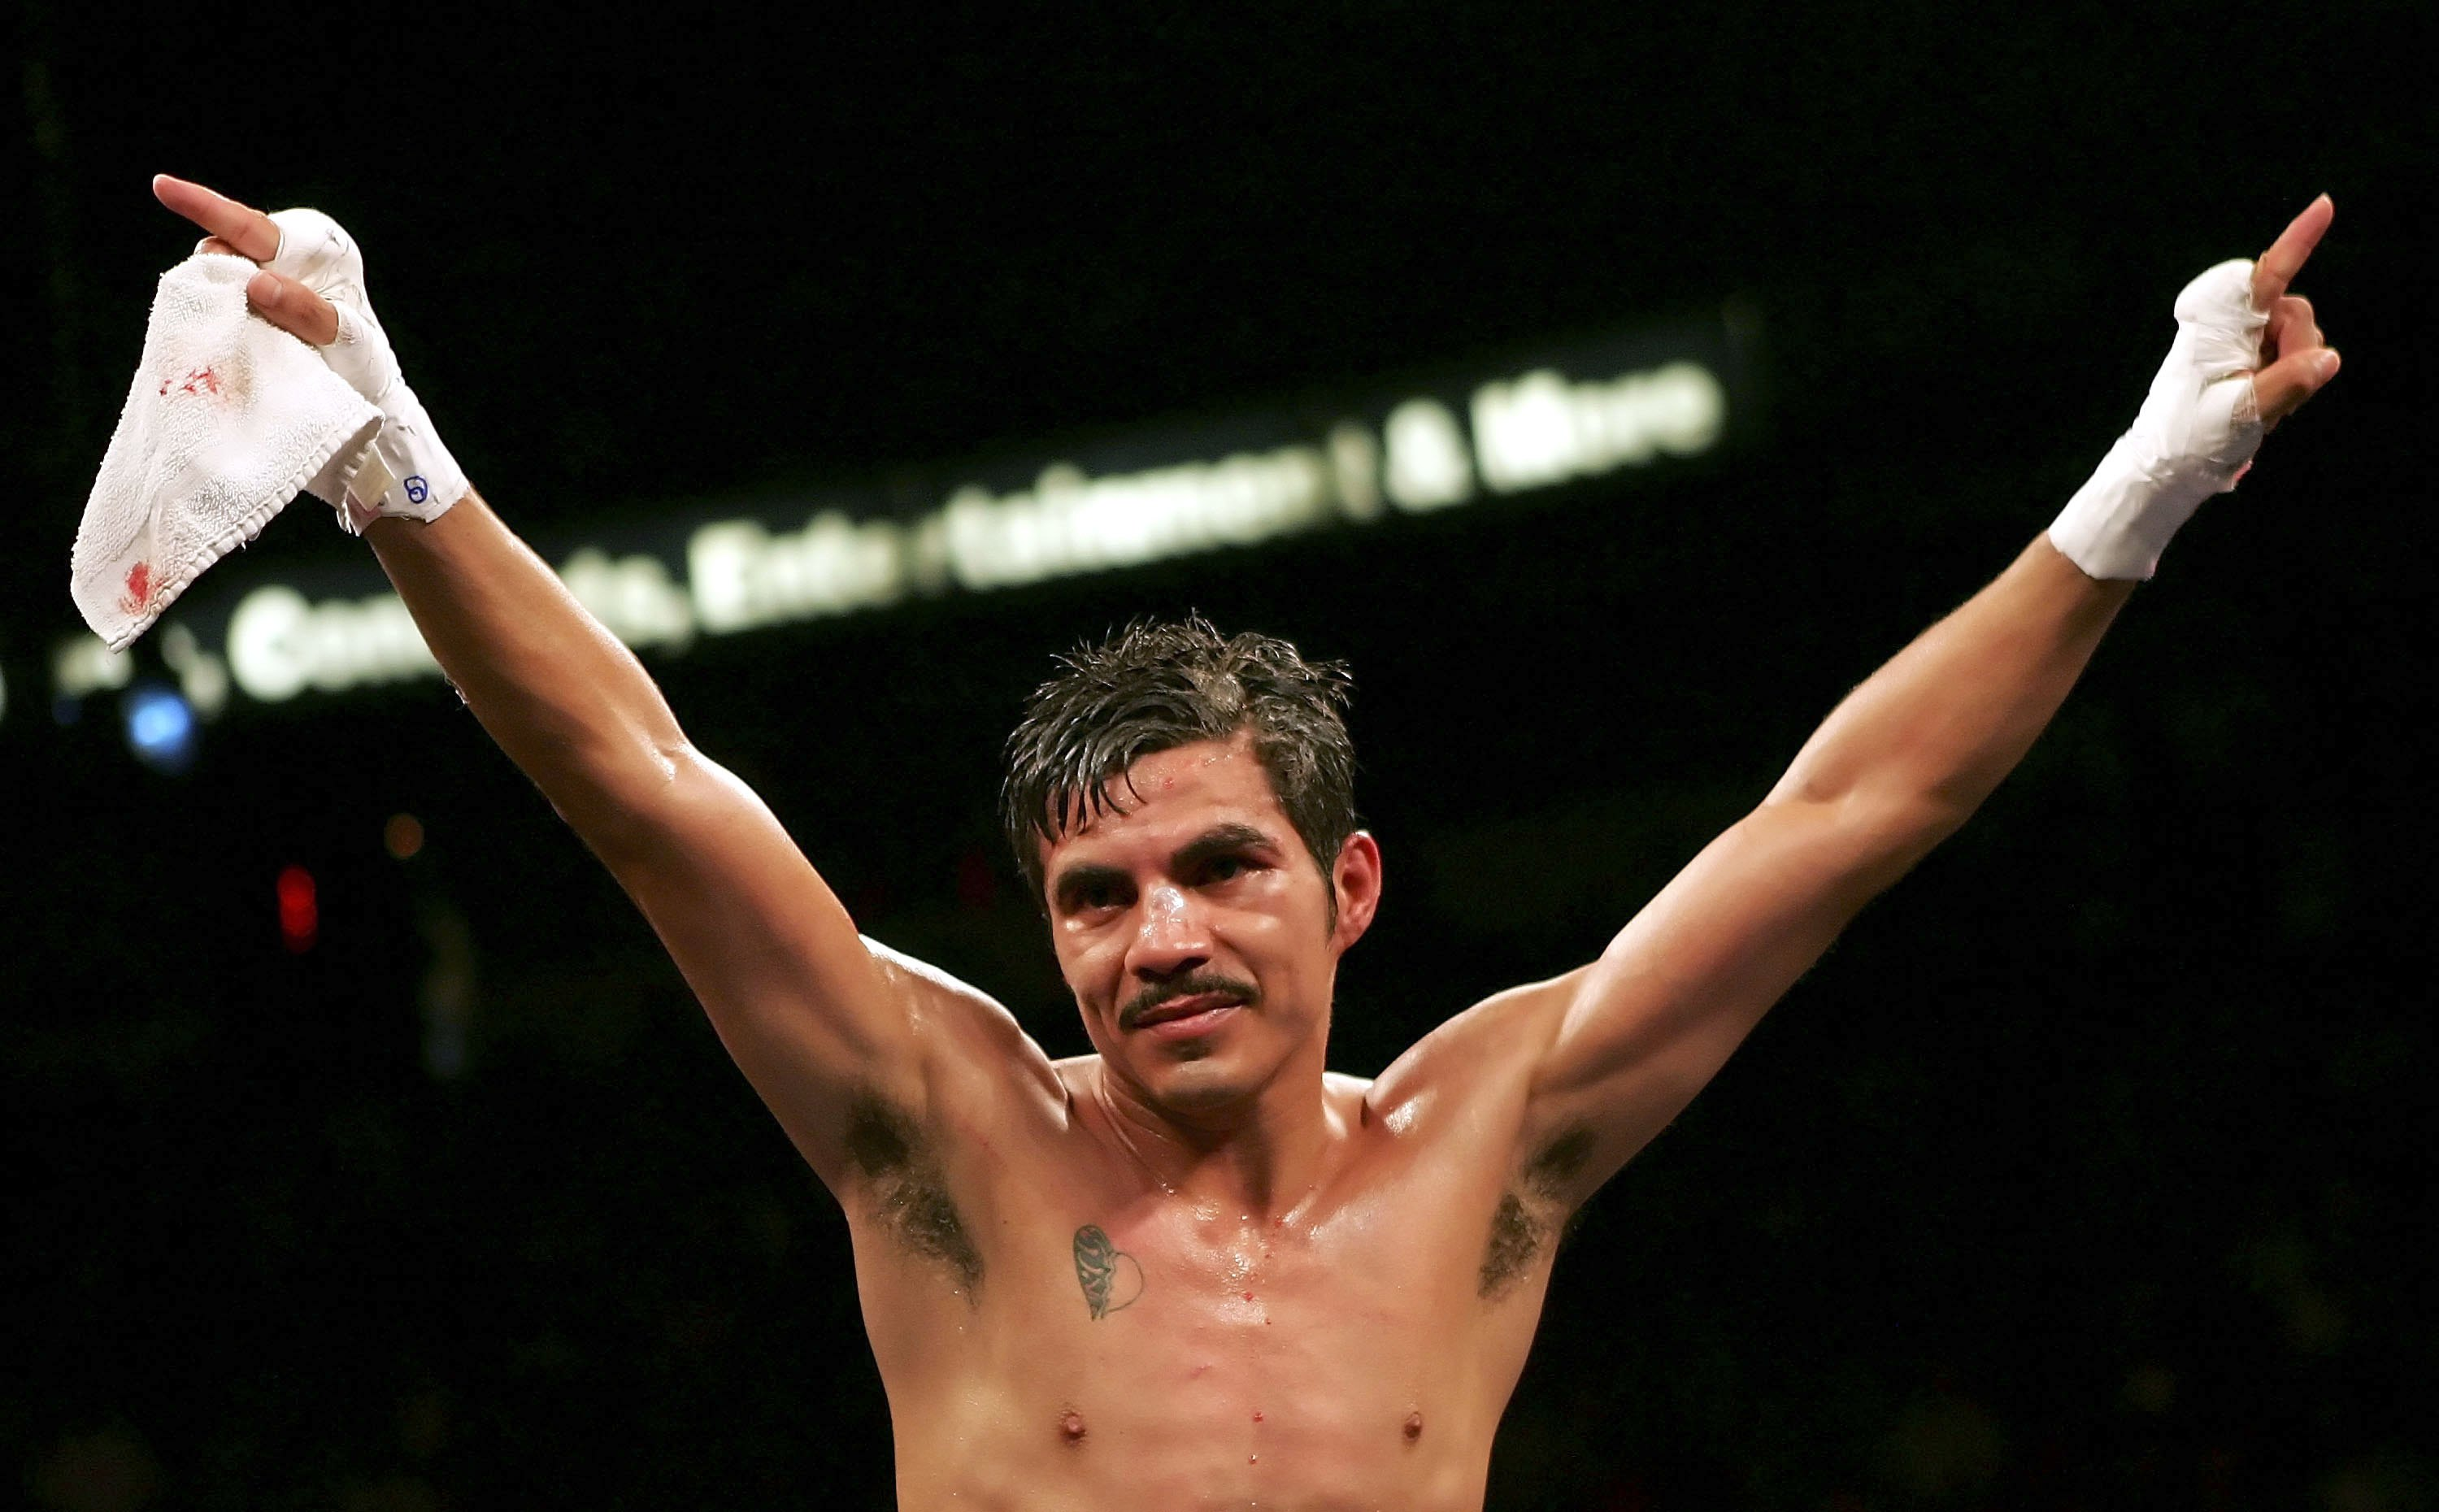 LAS VEGAS - NOVEMBER 18:  (R-L) Omar Nino of Mexico puts his arms up in celebration after his light flyweight title bout against Brian Viloria at the Thomas & Mack Center on November 18, 2006 in Las Vegas, Nevada. Nino won by majority draw to remain WBC c